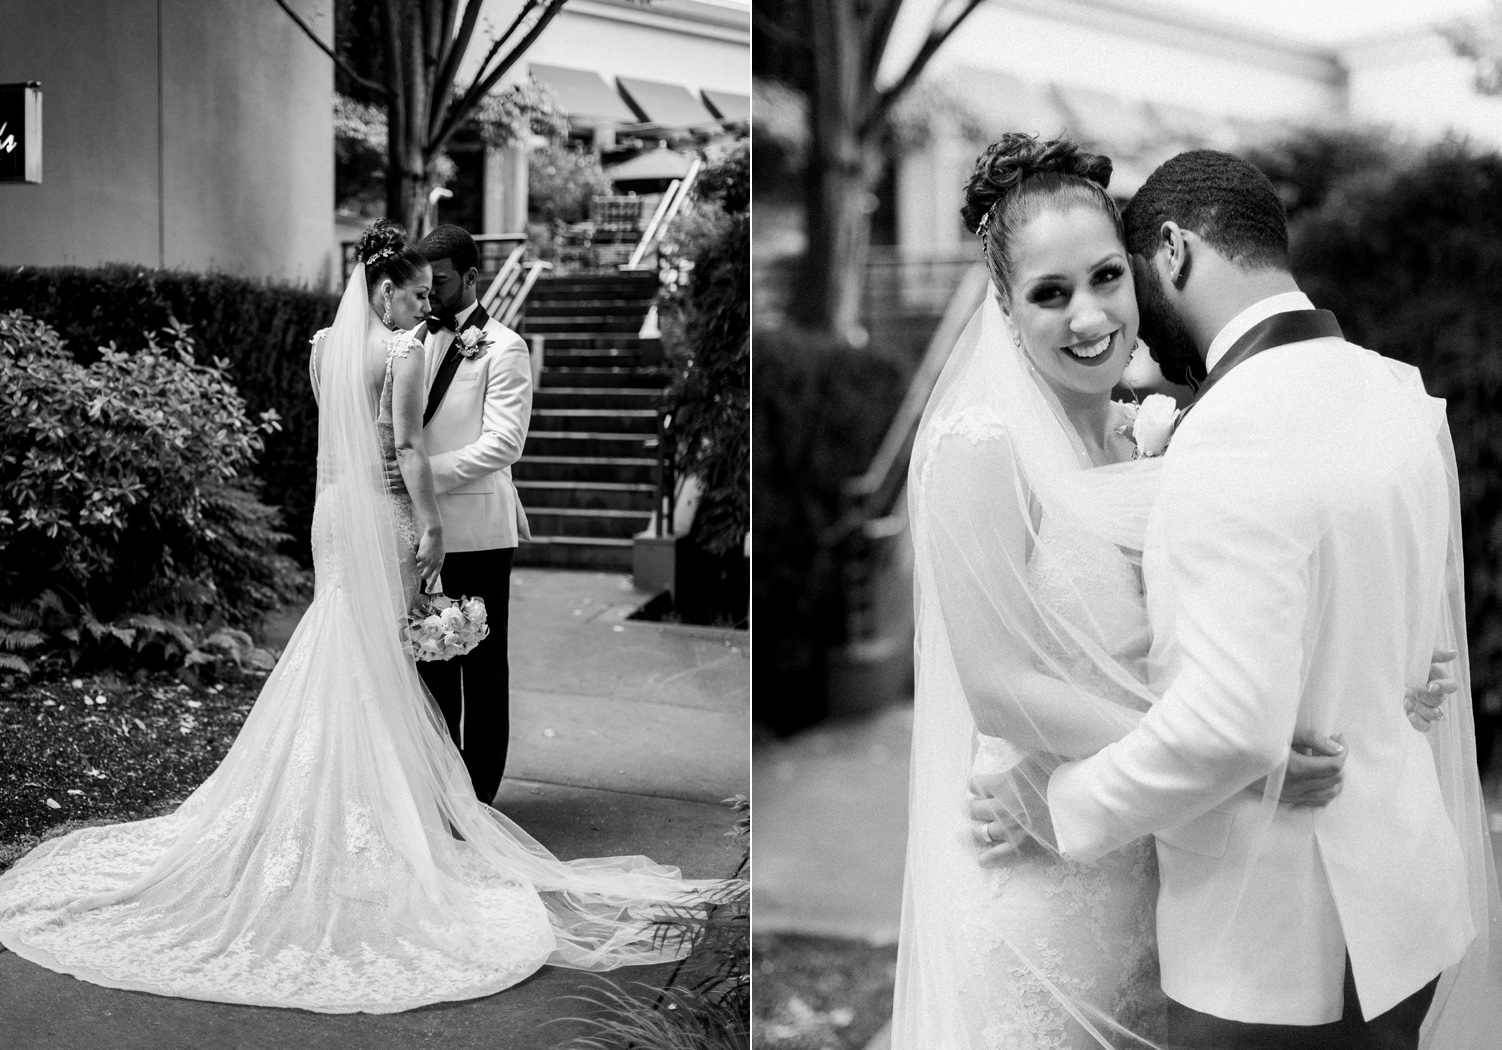 elegant bride and groom wedding portrait seattle.jpg